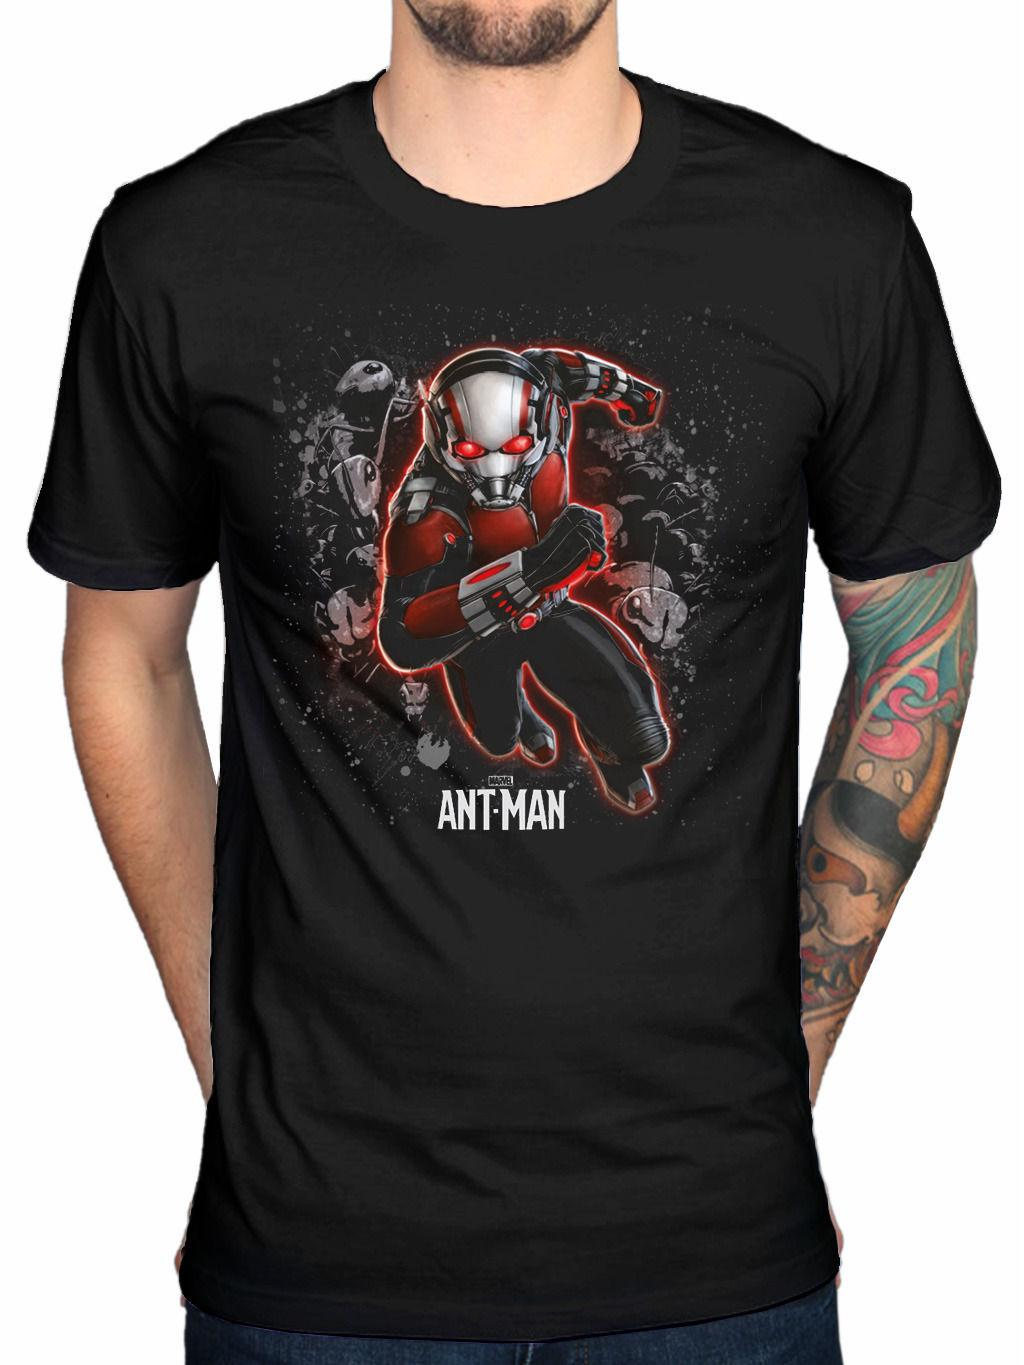 e5834f8ed Official Marvel Ant Man Antman T Shirt Movie Classic Logo Comic Superhero  Atom Hip Hop Men Tshirt T Shirt Design Template Funny T Shirt From  Cls6688523, ...